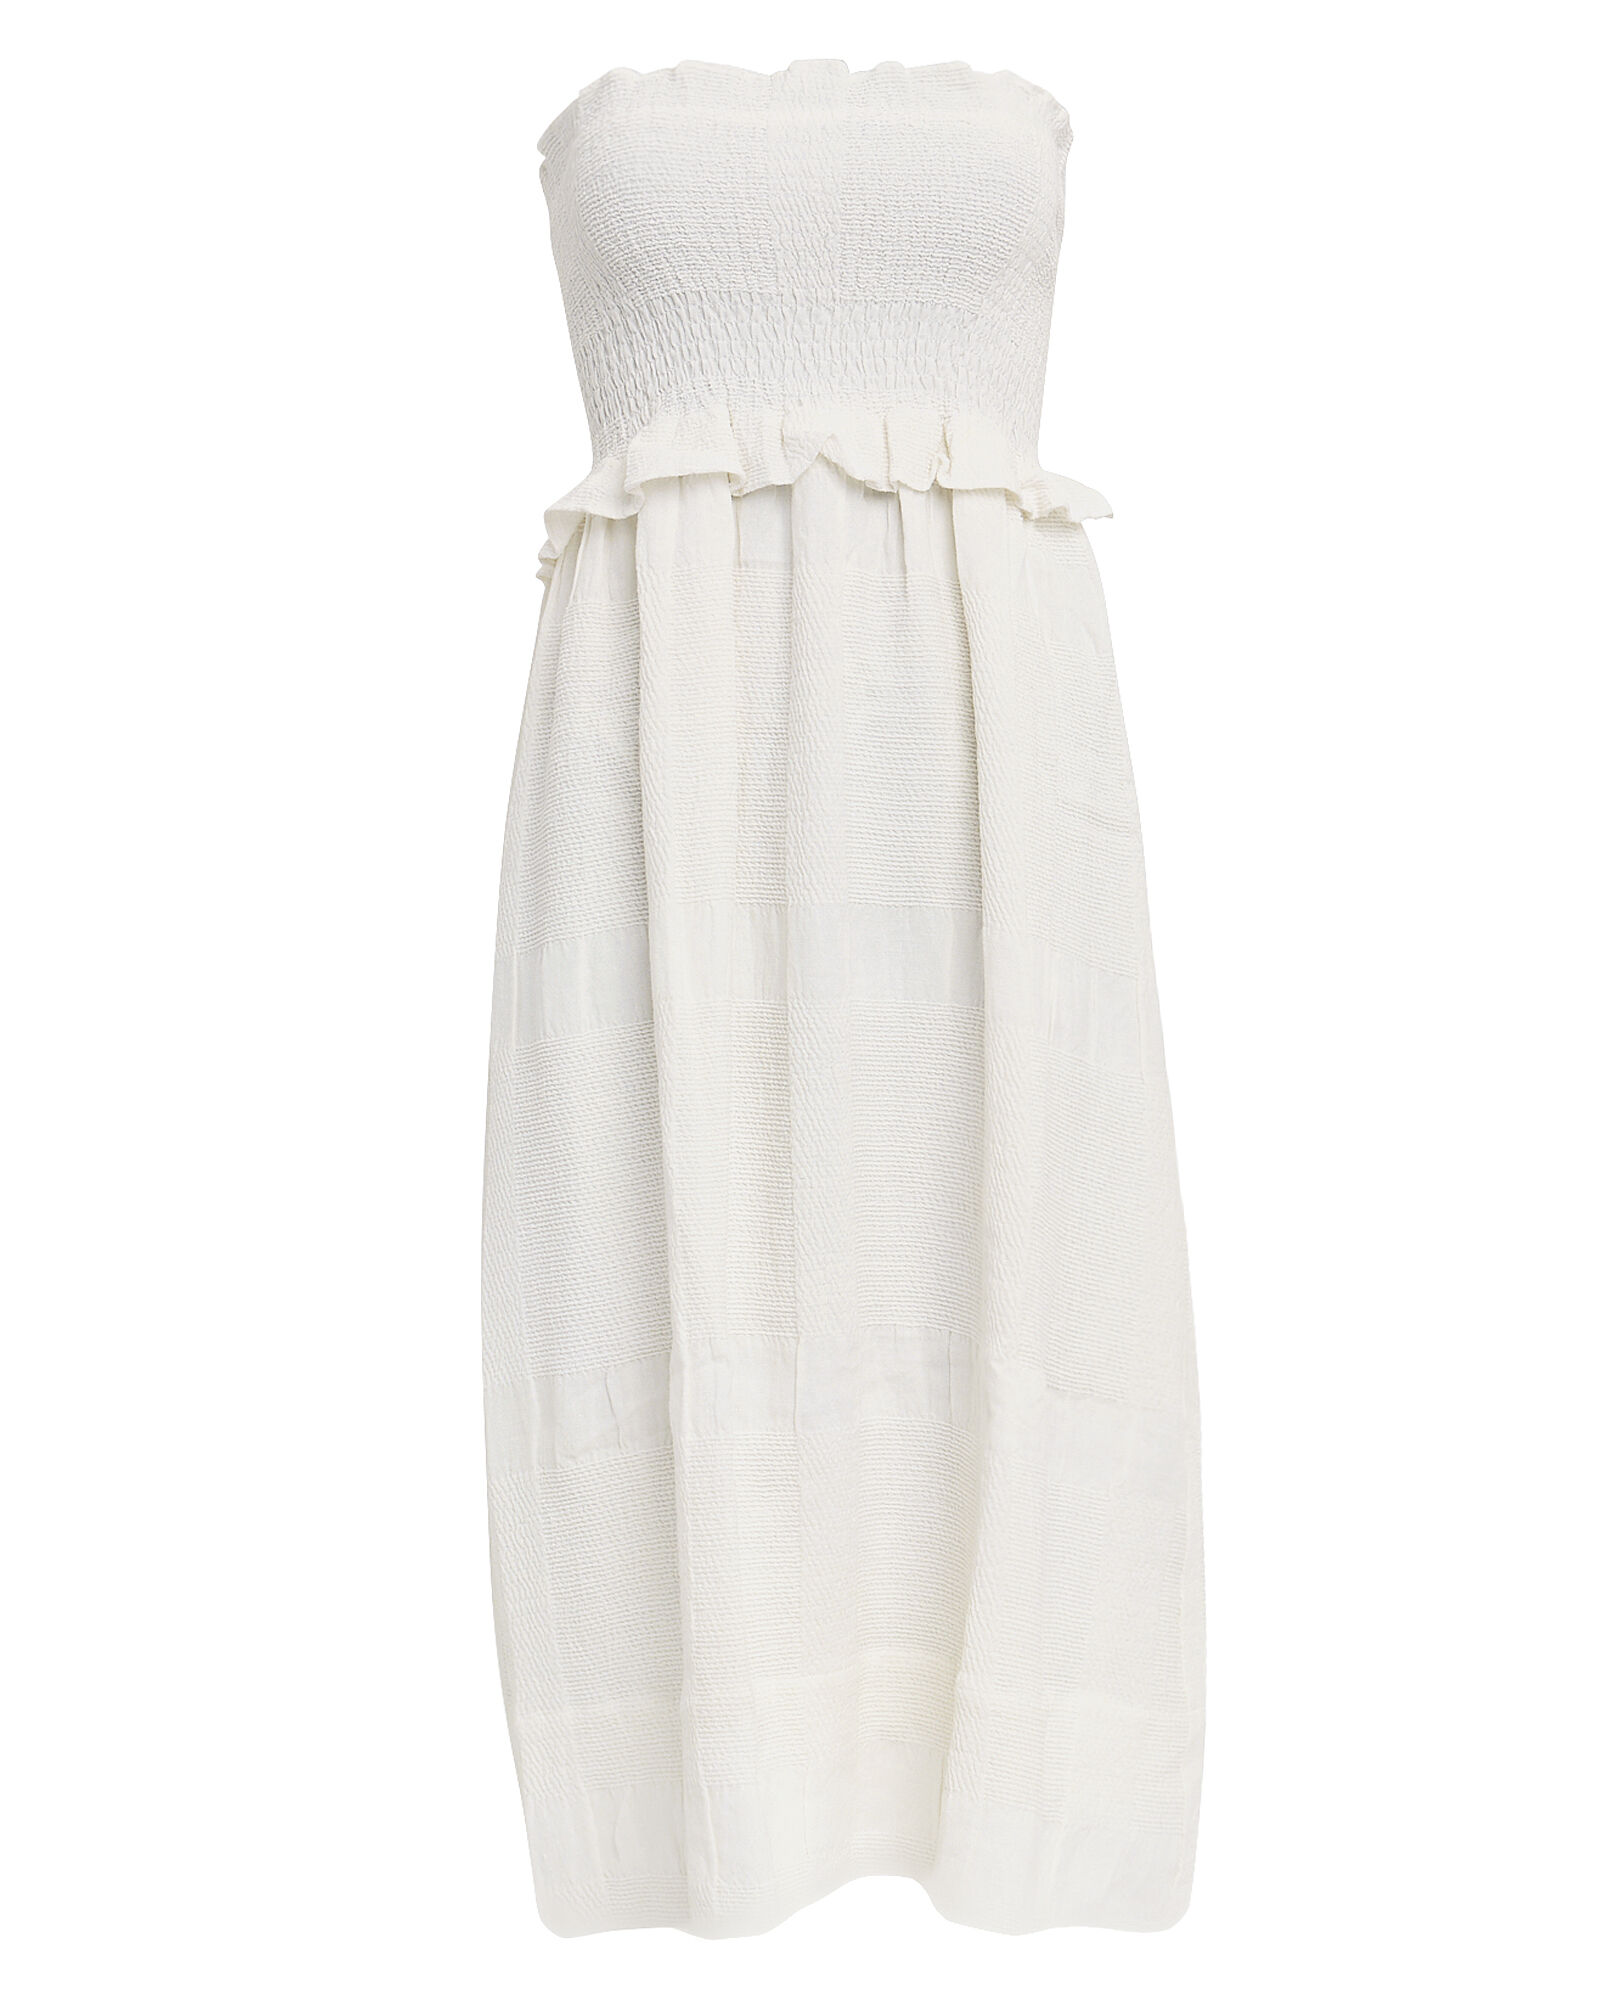 Shirred Babydoll Dress, WHITE, hi-res